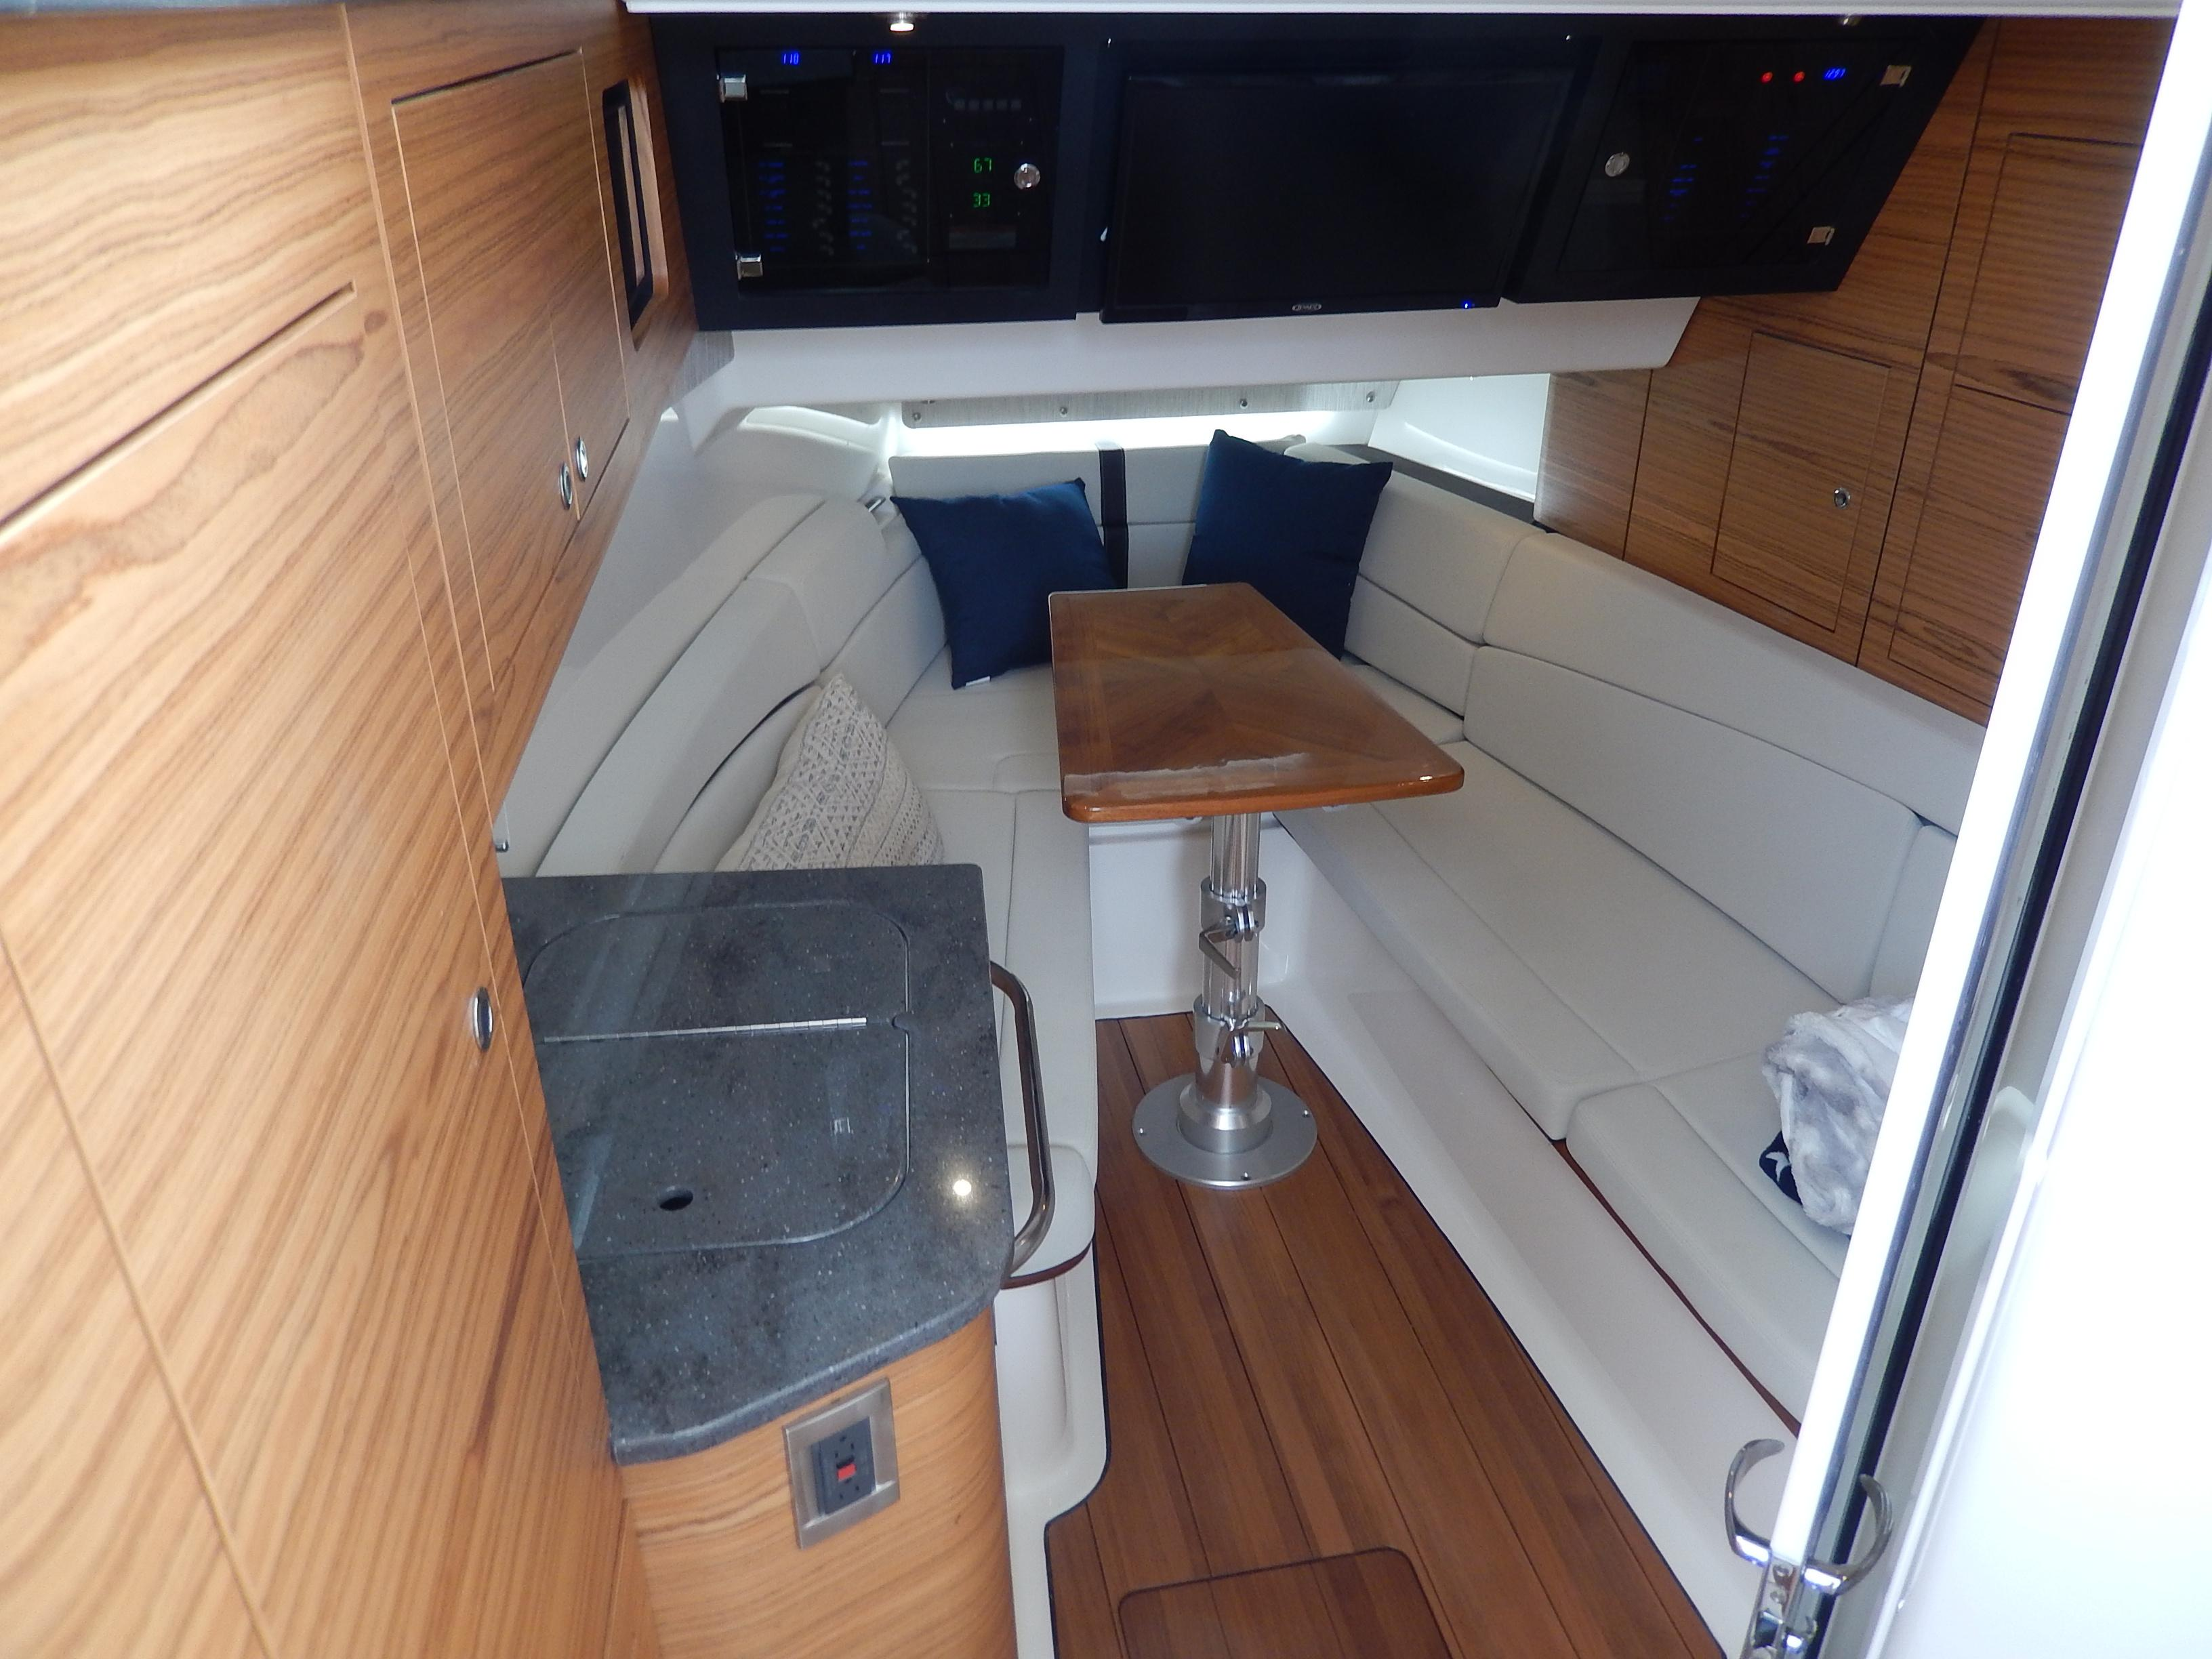 2019 Boston Whaler 380 Realm #TB1554RM-LLC inventory image at Sun Country Coastal in San Diego